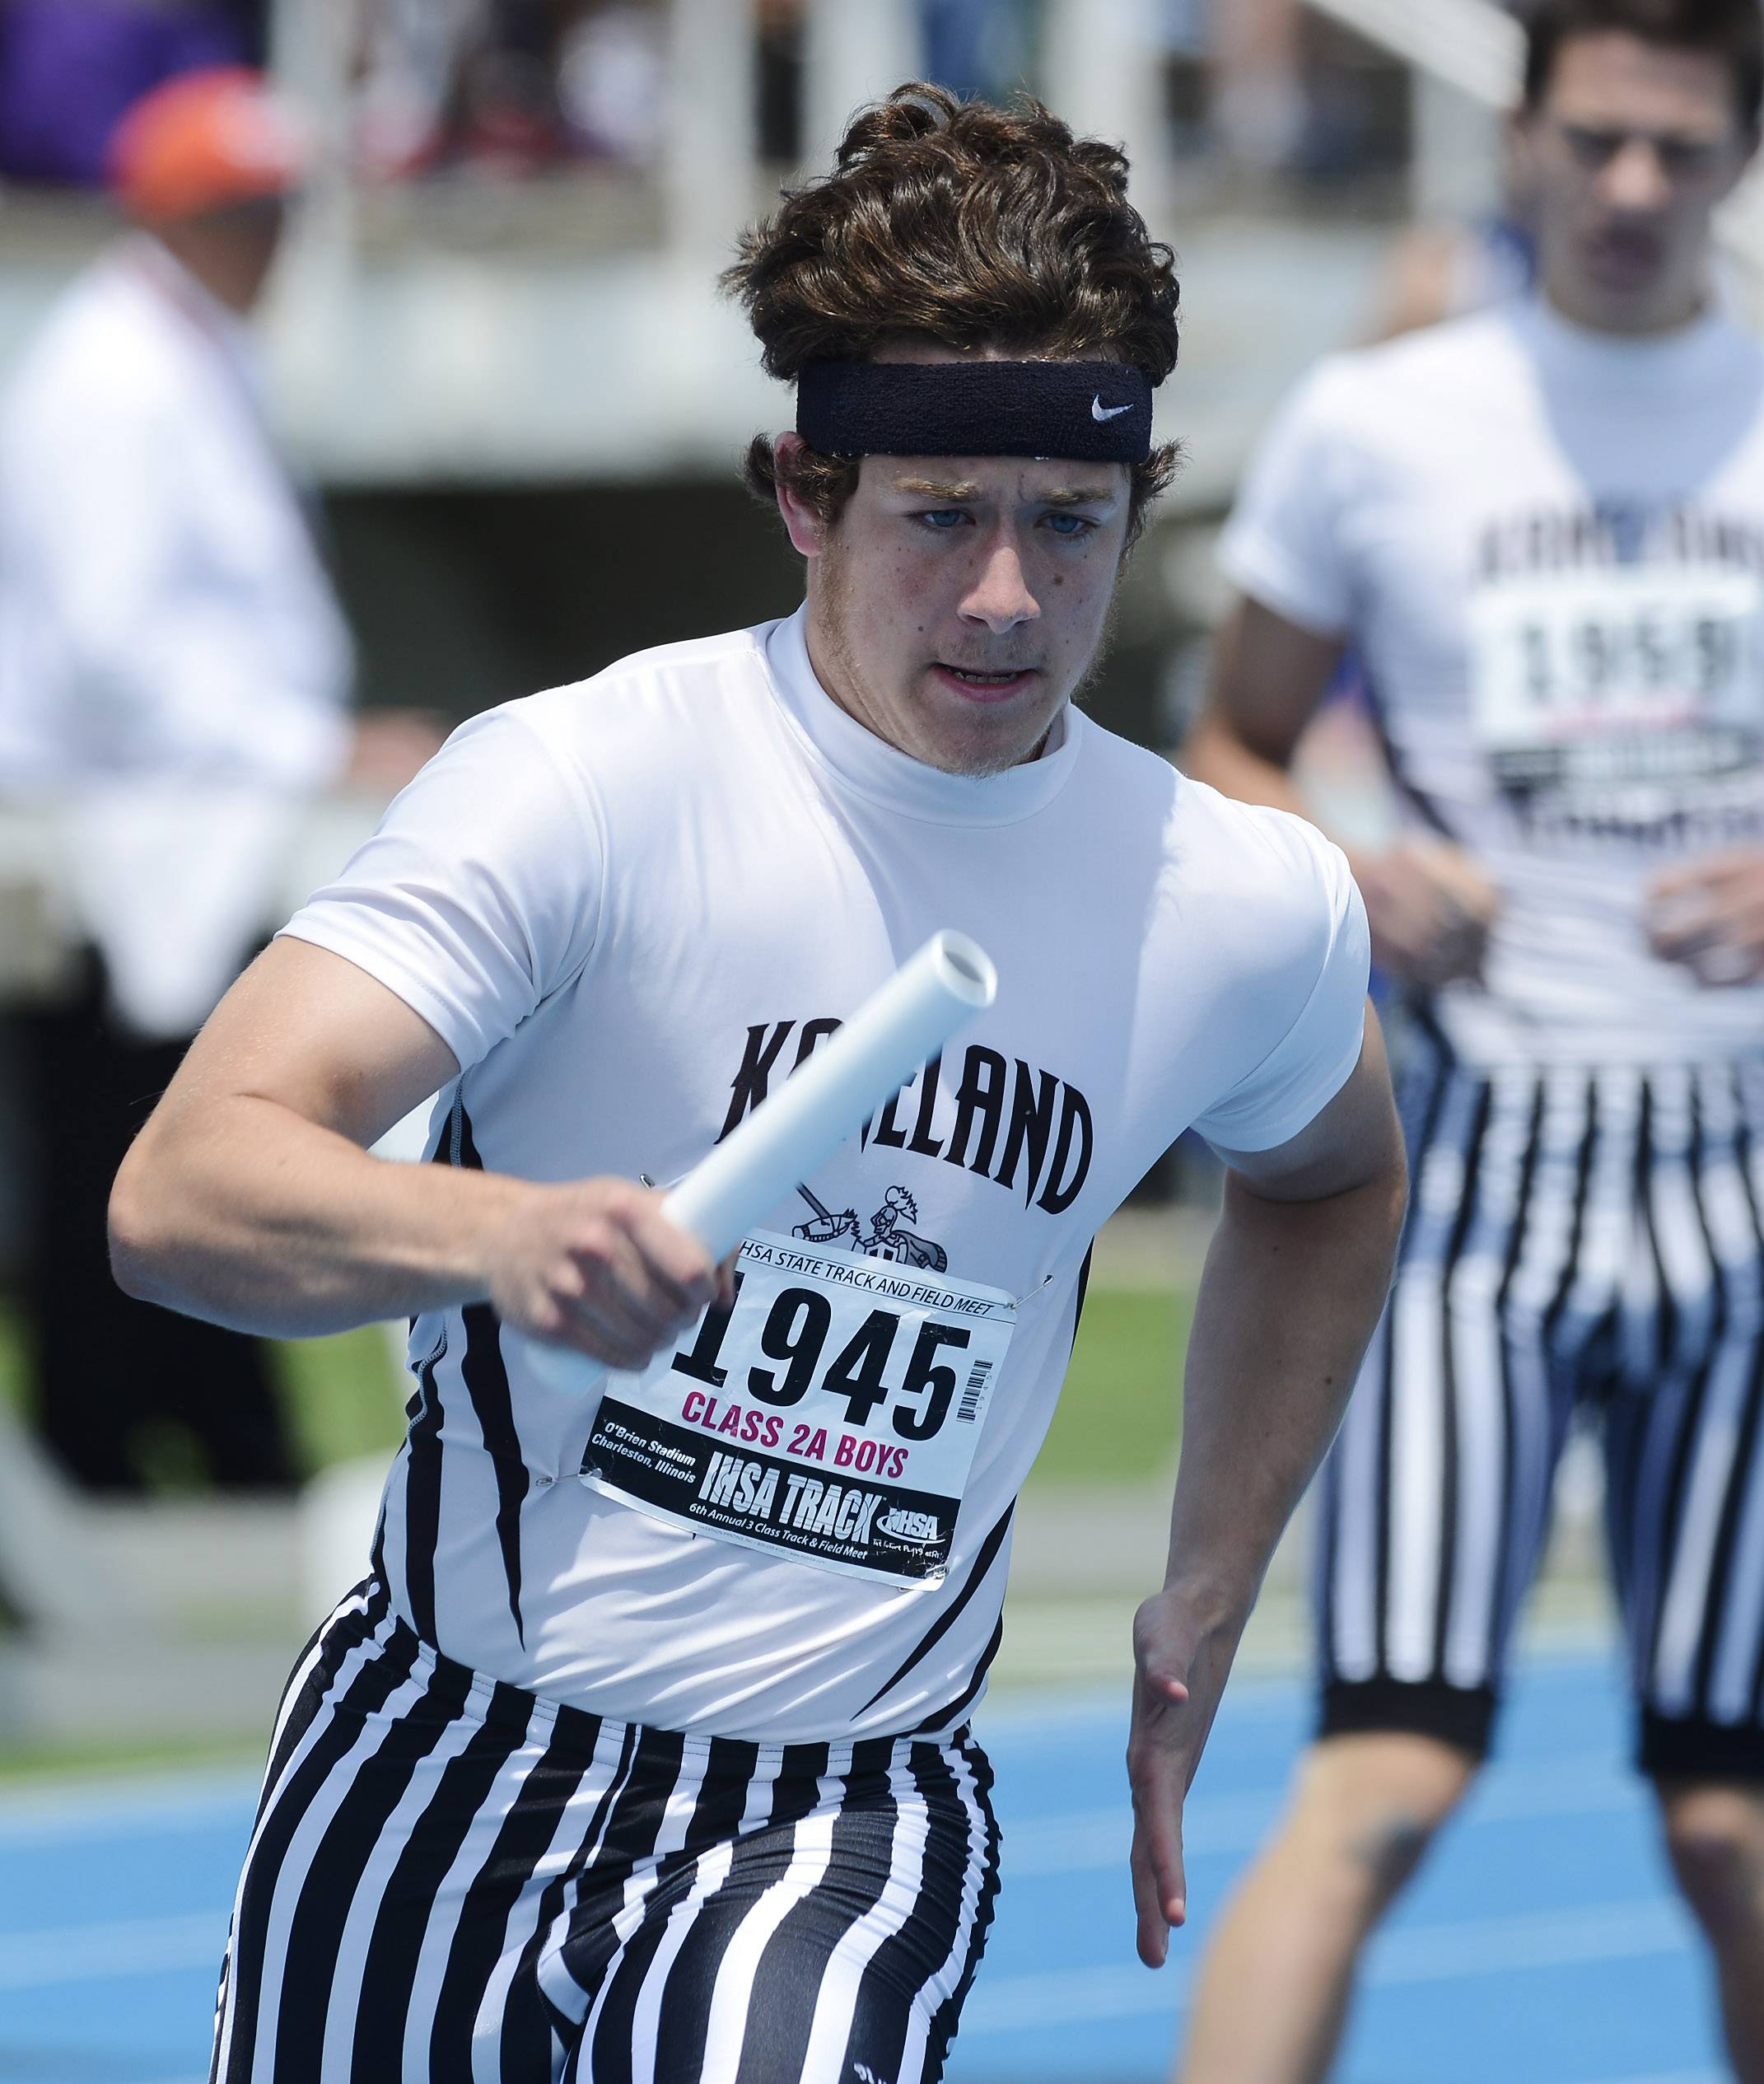 Brandon Bishop of Kaneland carries the baton for his team in the 4x400-meter relay during the Class 2A boys track and field state preliminaries in Charleston on Friday.